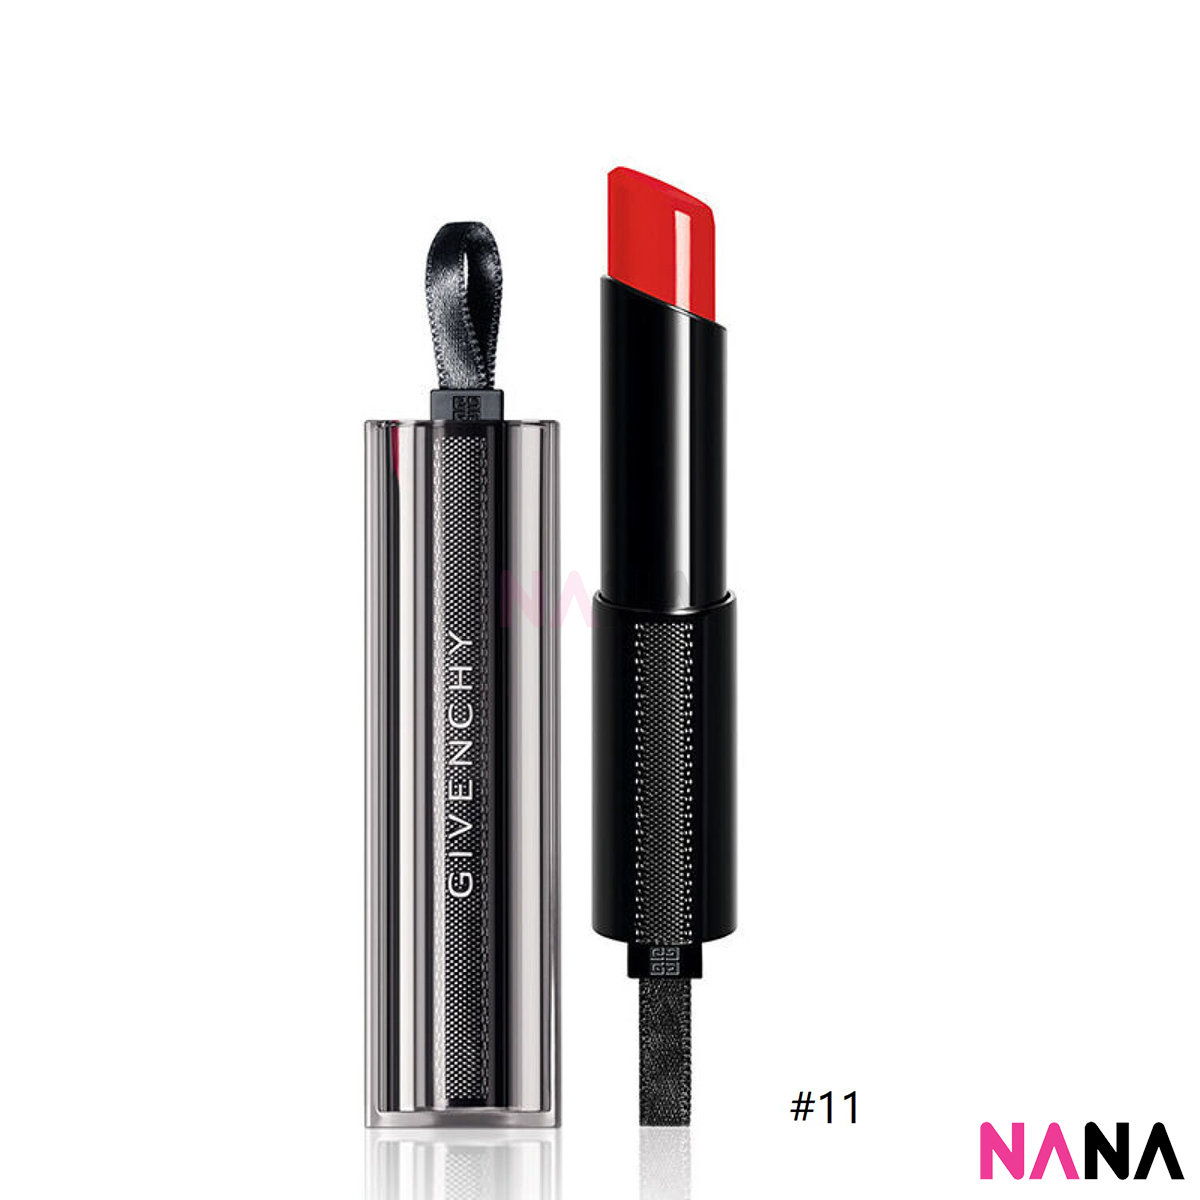 Rouge Interdit Vinyl Extreme Shine Lipstick Illicit Color #11 Rouge Rebelle 3.3g